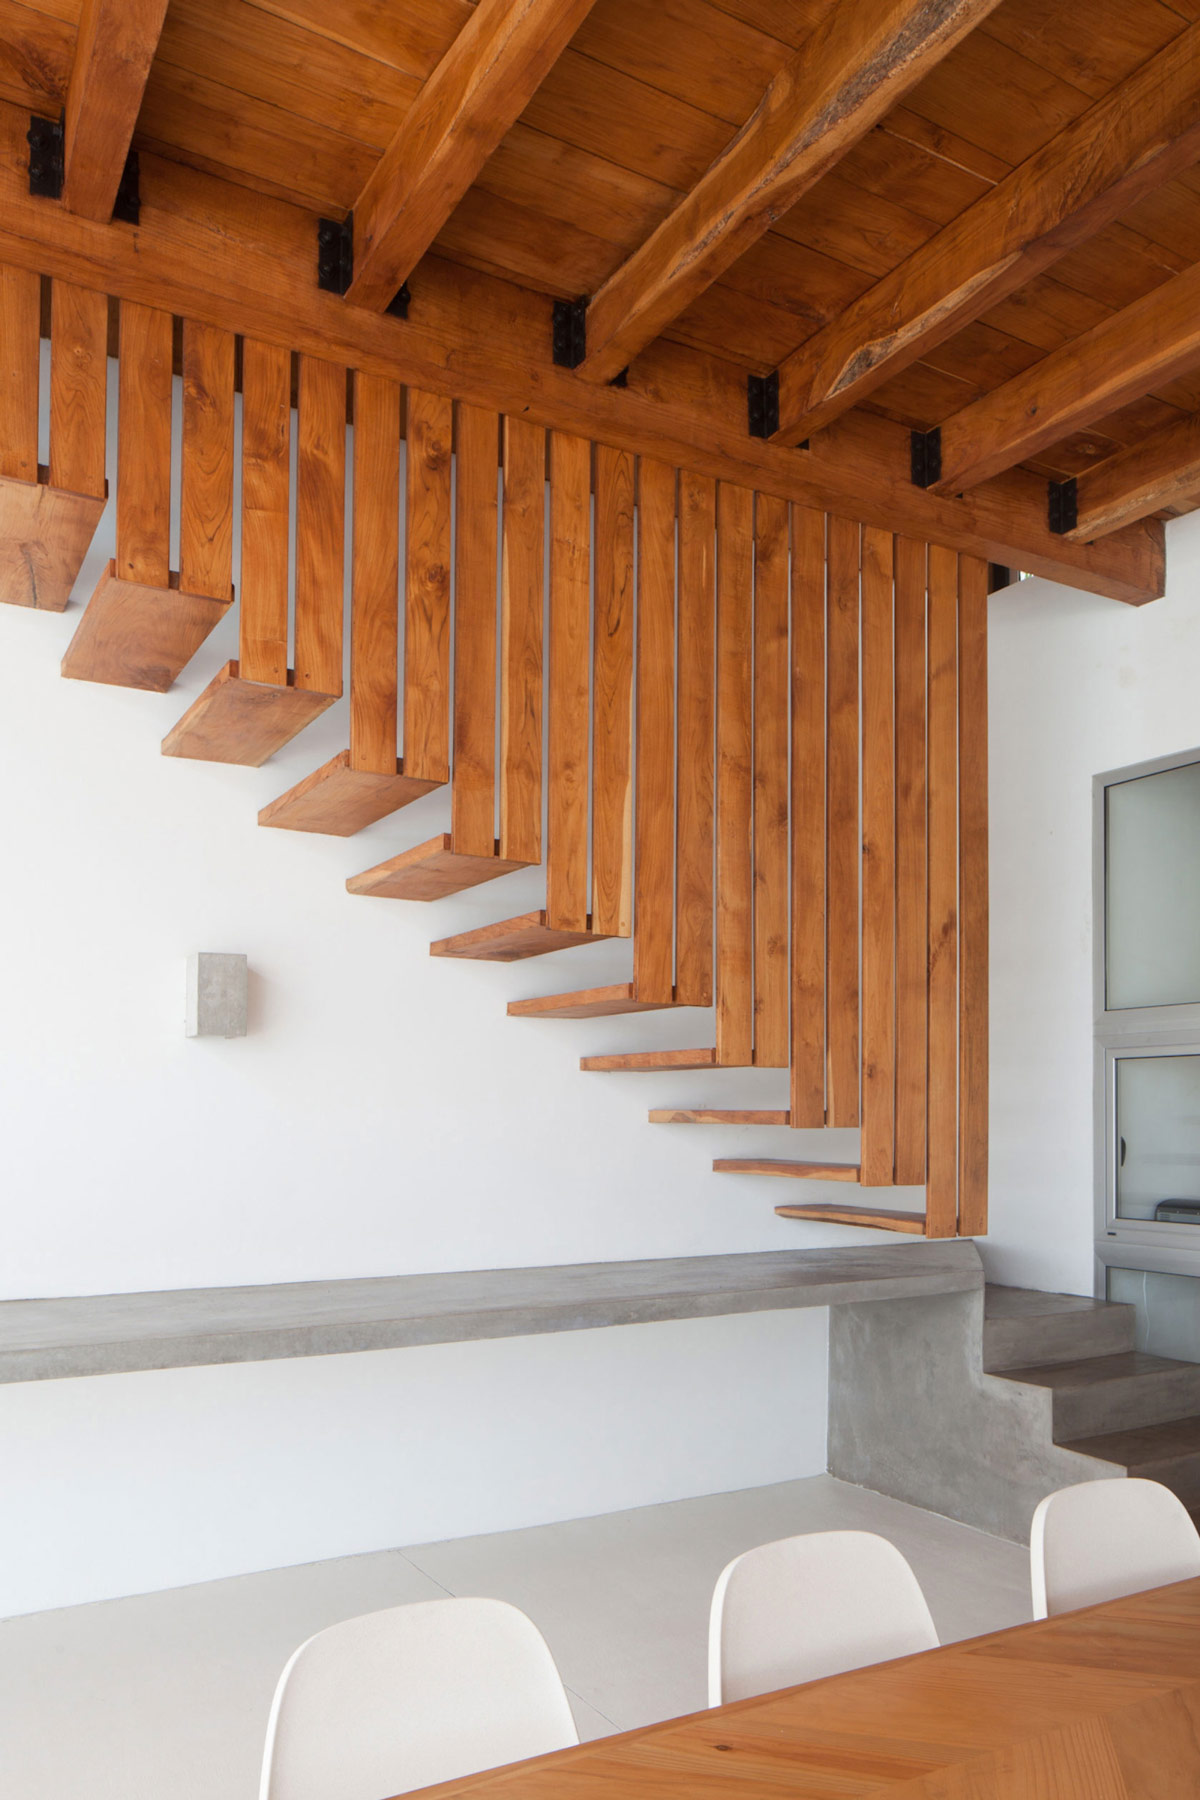 Concrete & Wood Stairs, Beach House in San Salvador, El Salvador